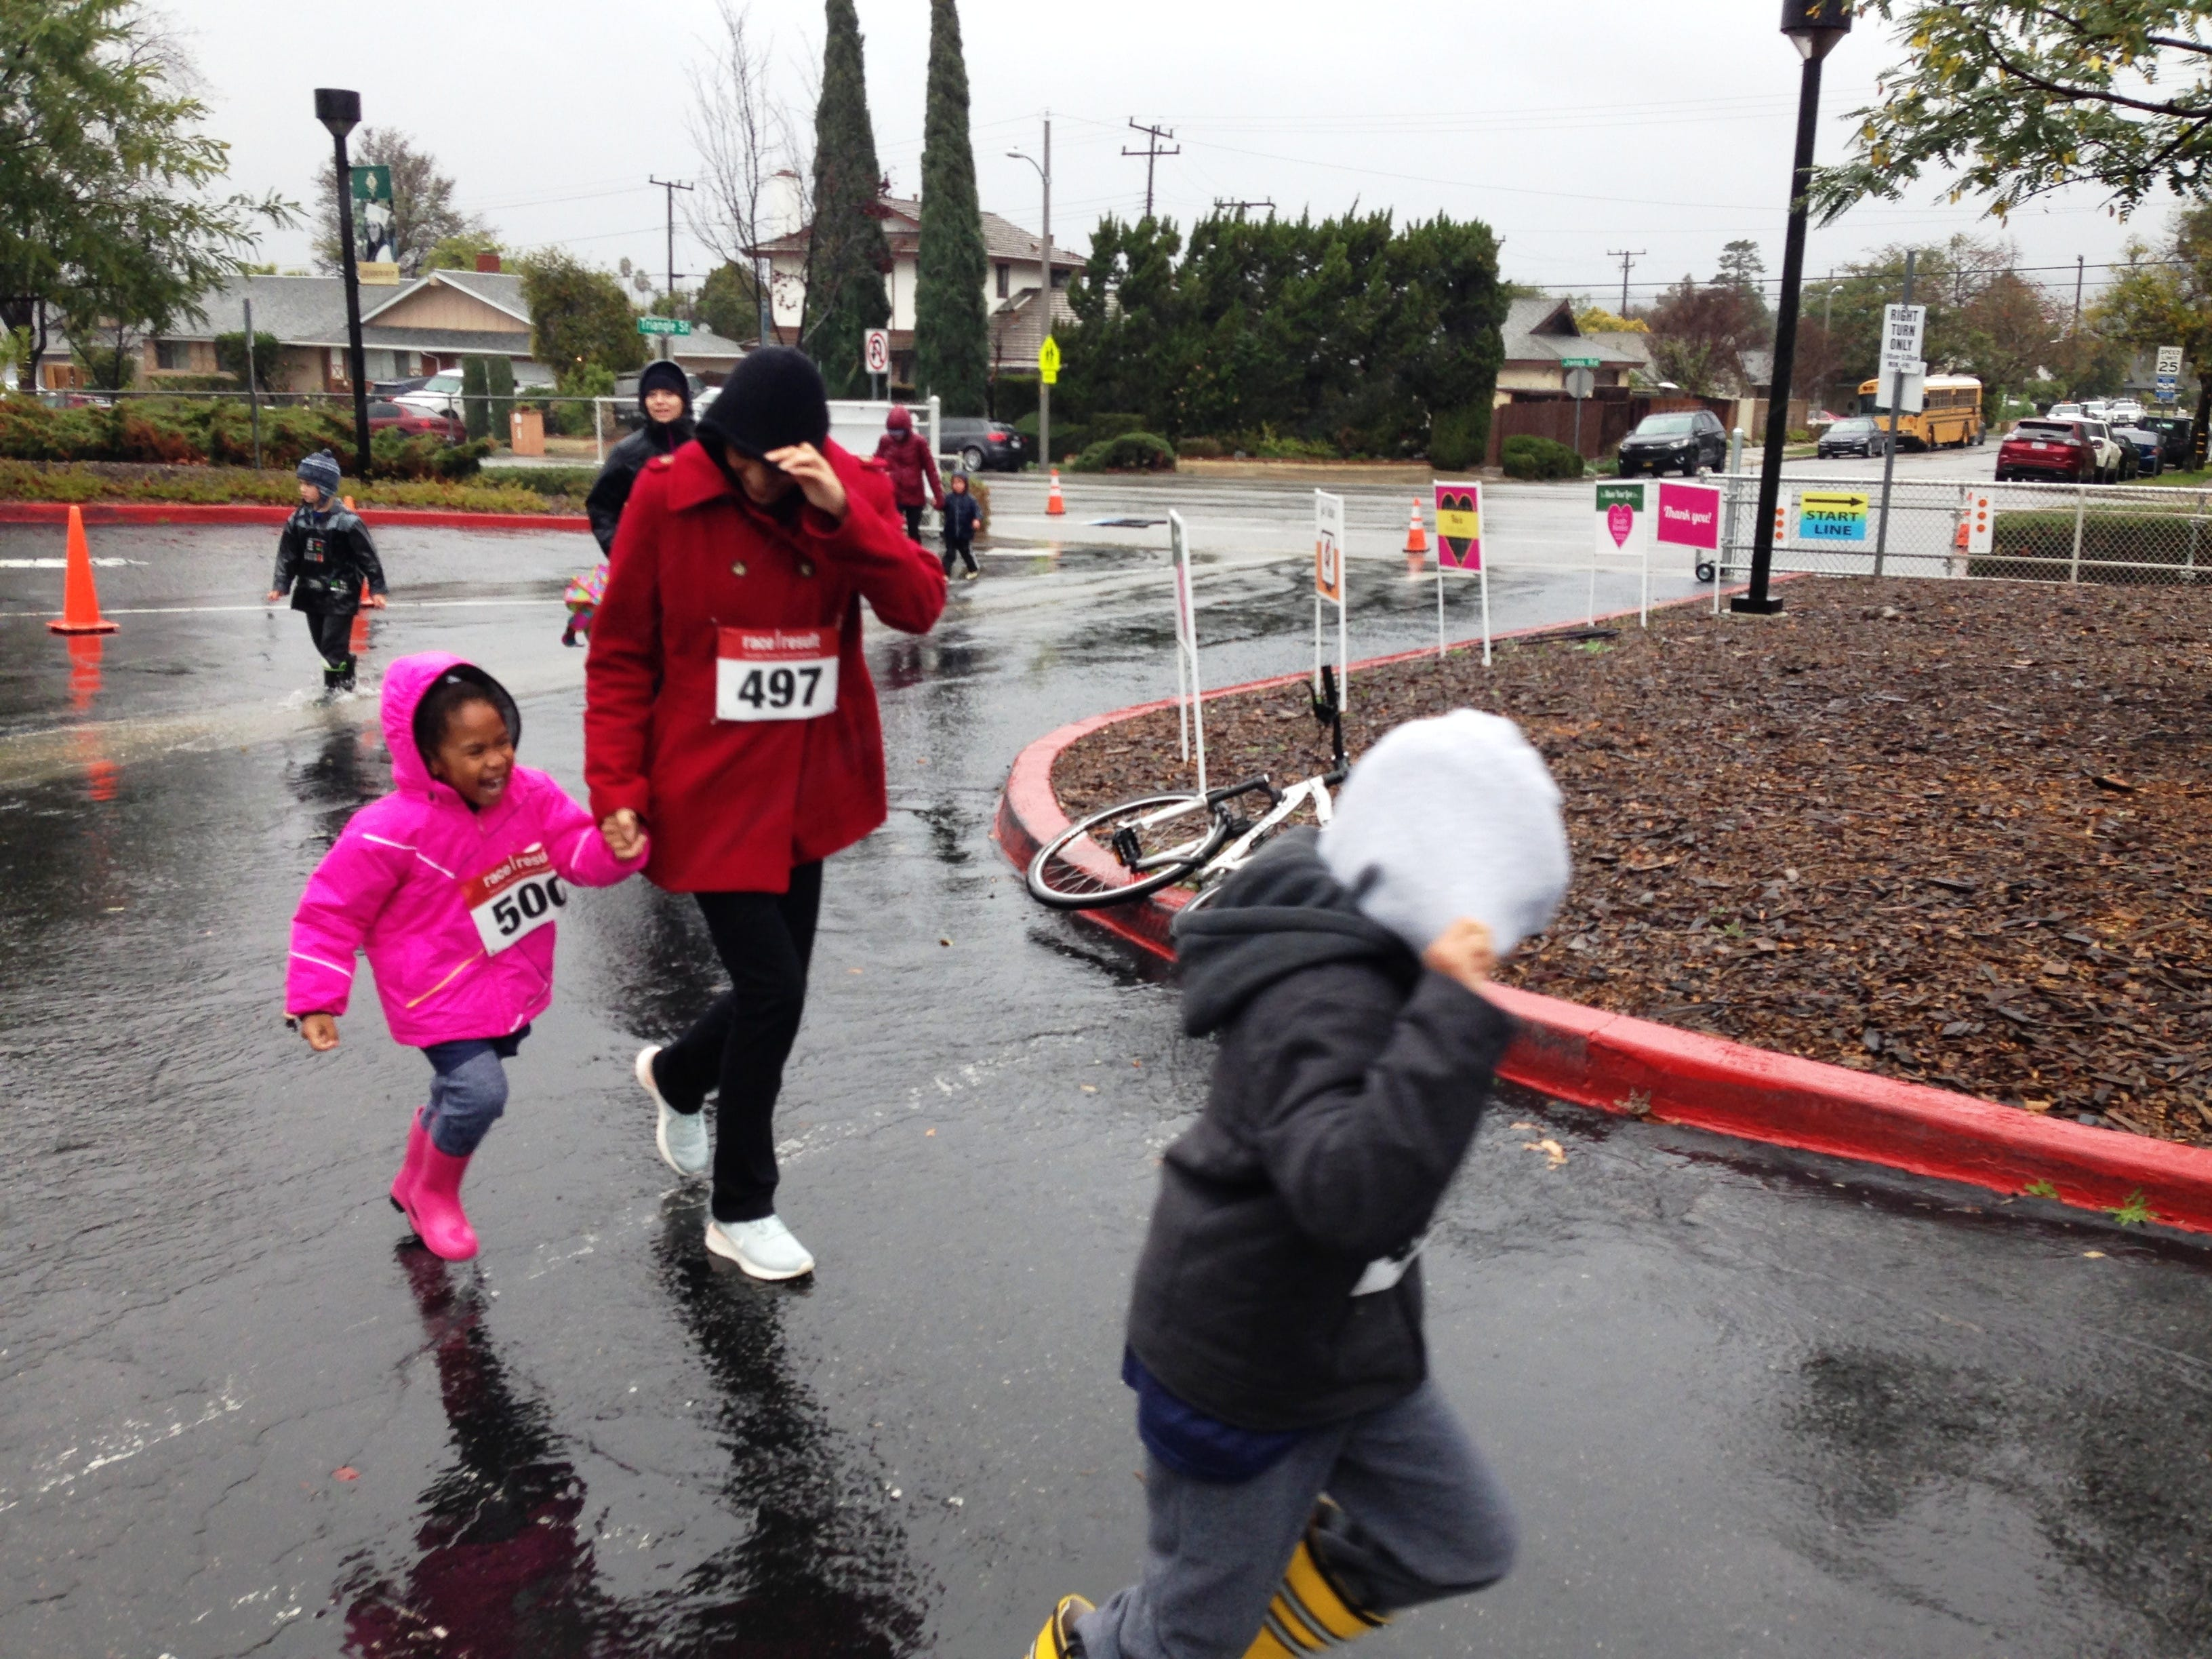 Event participants run through the rain to the finish line during the fifth annual Sisters of Notre Dame Nun Run, presented by La Reina High School and Middle School in Thousand Oaks on Saturday.